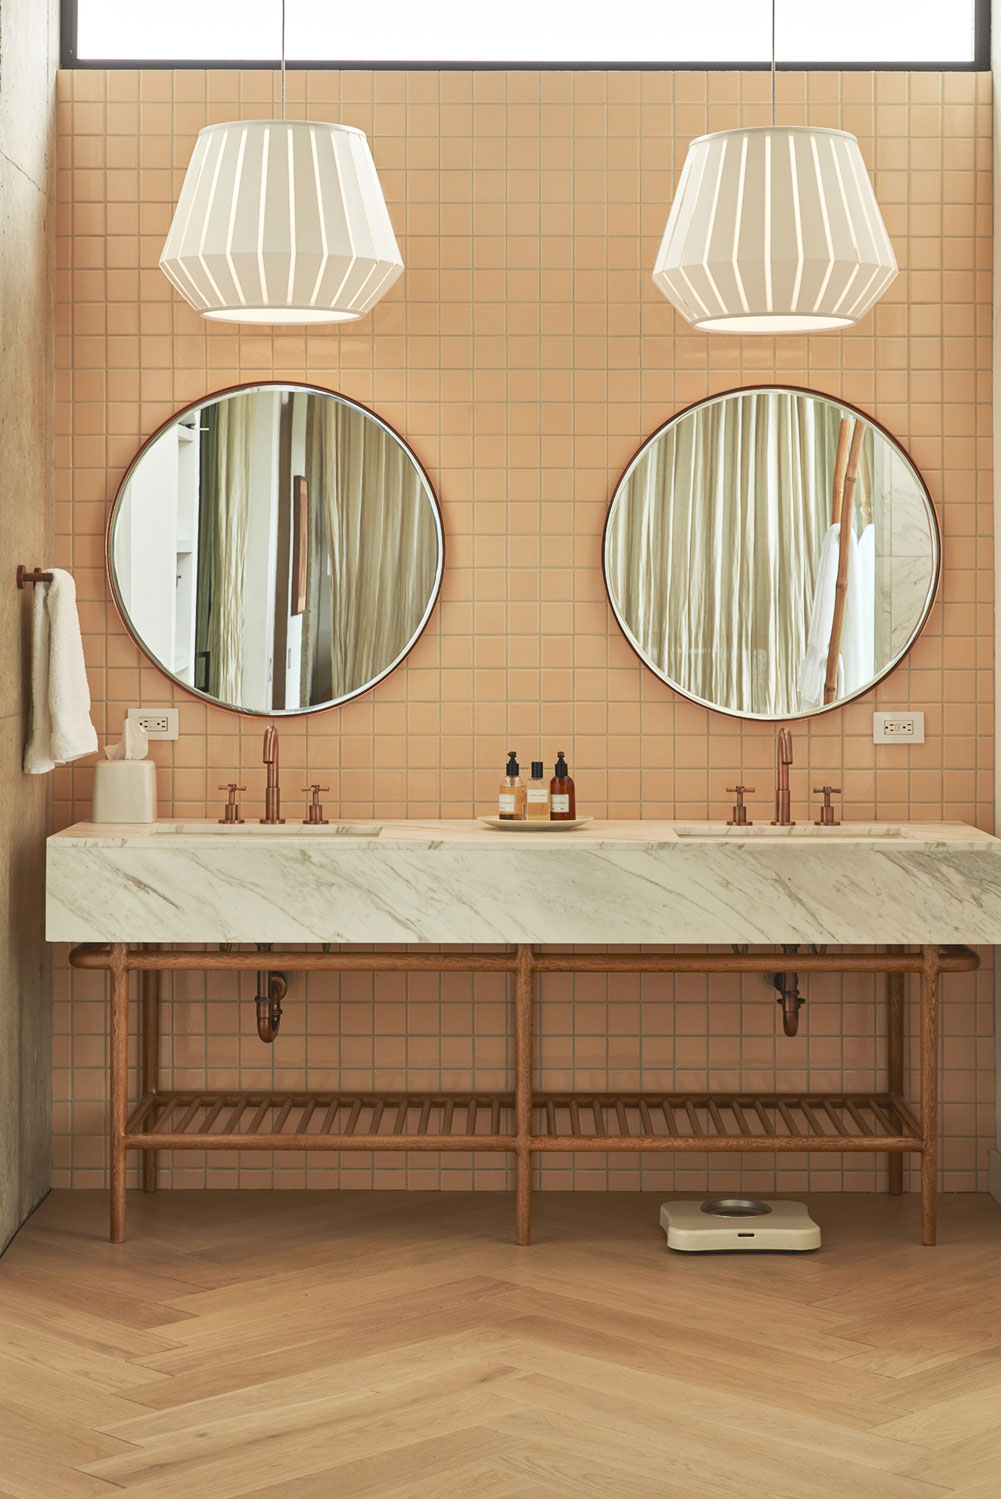 Tan 50 W Mid Century Bathroom And Kitchen Tiles For Homes From The 1920 S To 1950 S